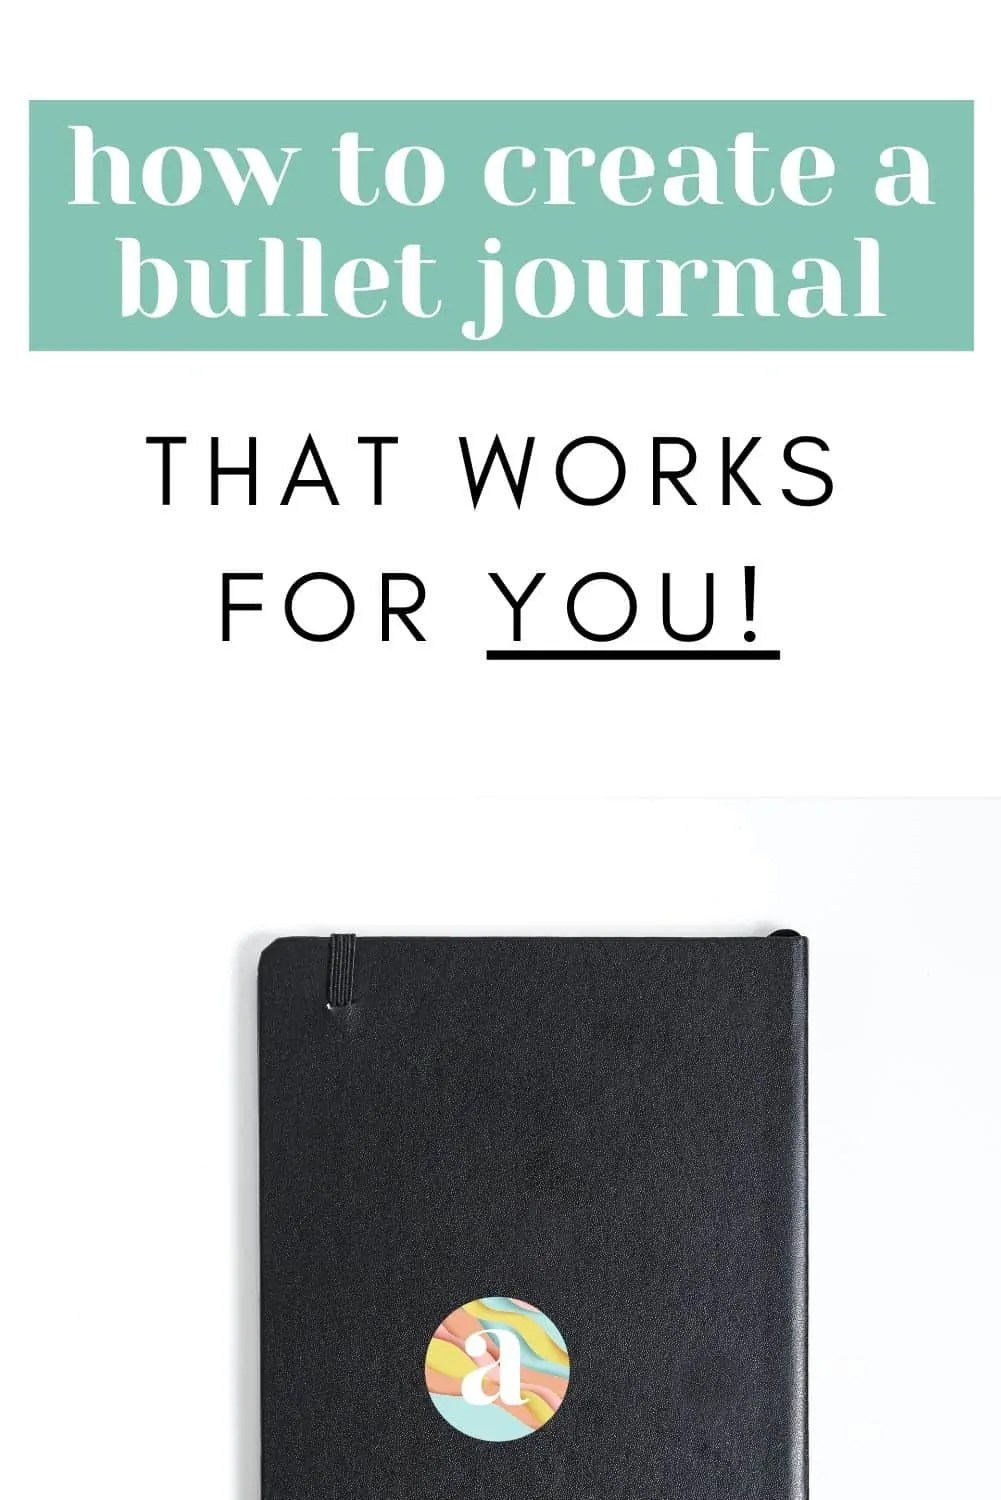 How to set up Bullet Journal - Honest Review of Brainbook 23